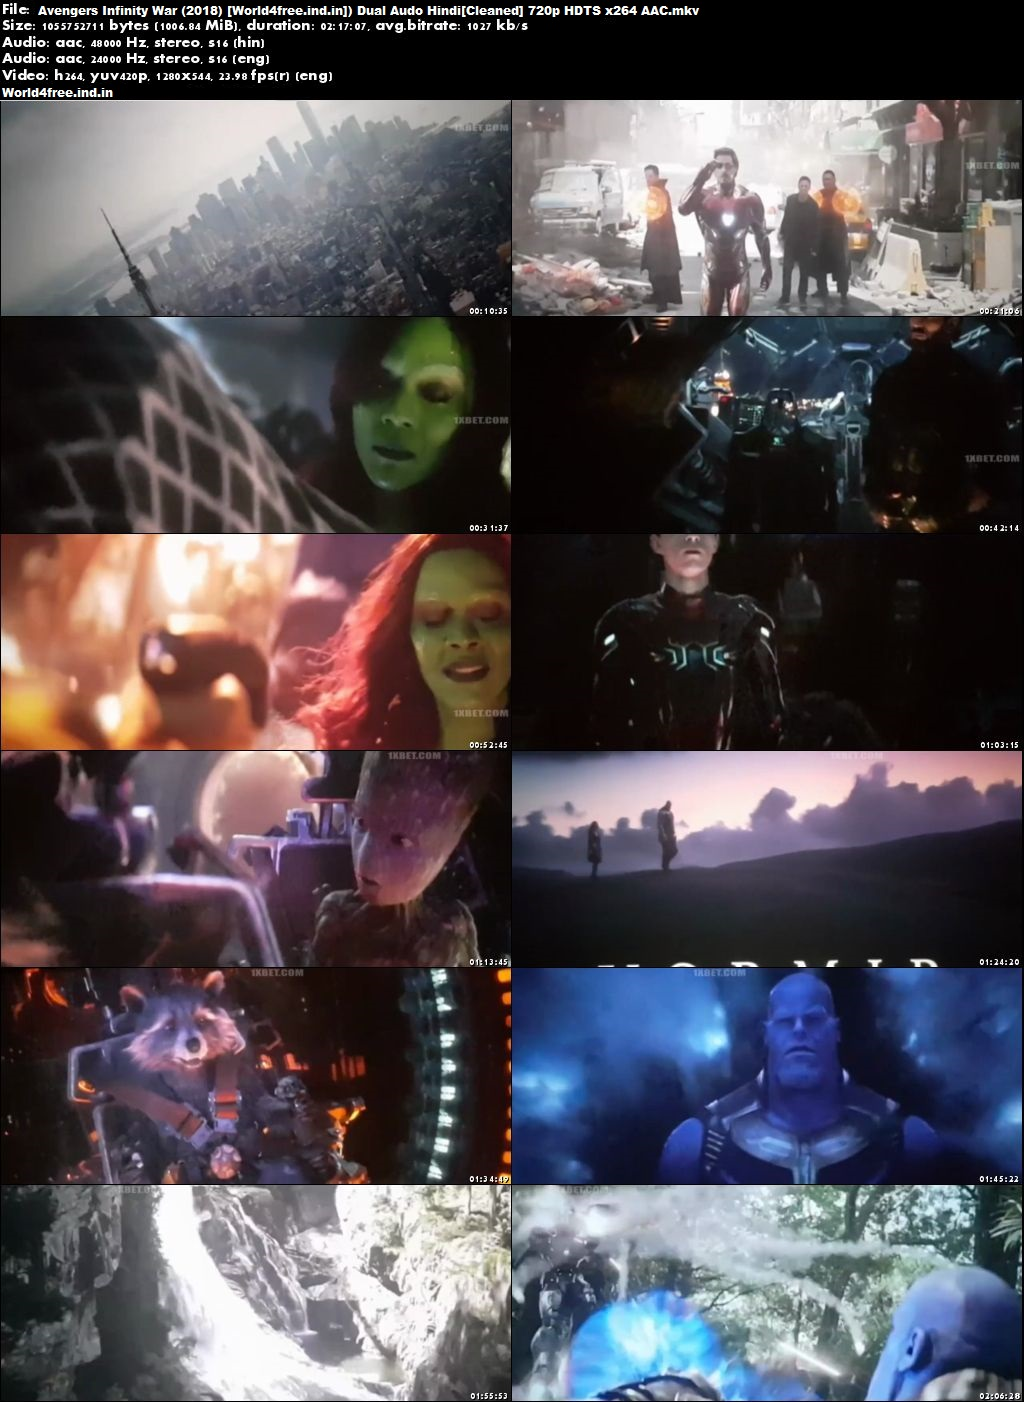 Avengers: Infinity War 2018 world4freeus Full HDTS Hindi Movie Download Dual Audio